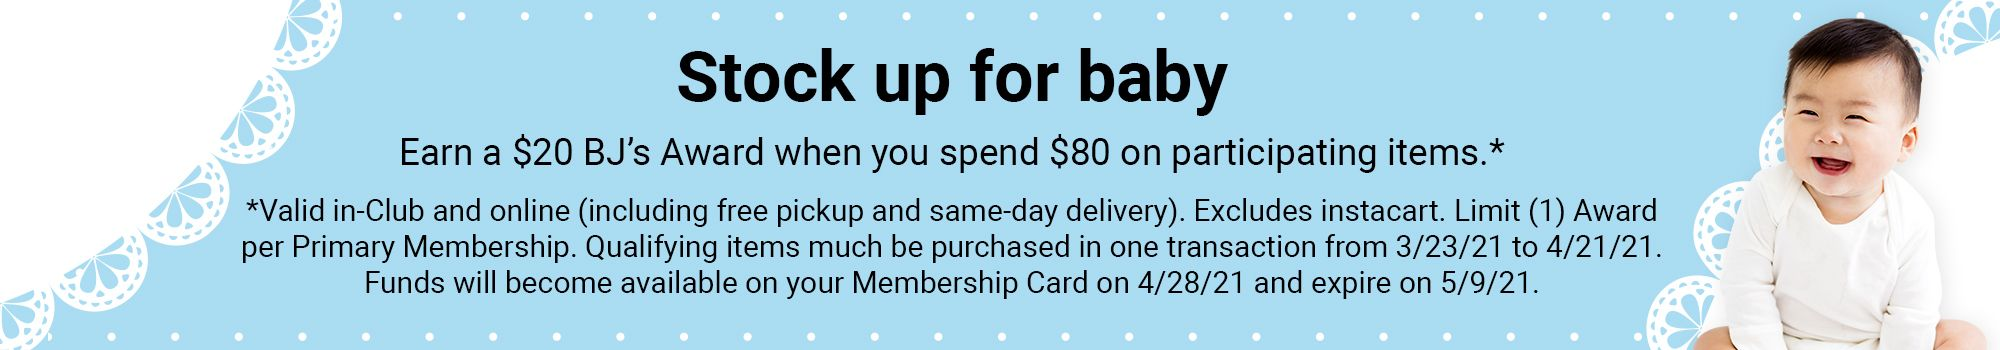 Stock up for baby. Earn a $20 BJ's Award when you spend $80 on participating items. Valid in Club and online, including free pickup and same day delivery. Excludes instacart. Limit 1 Award per Primary Membership. Qualifying items much be purchased in one transaction from 3/23/21 to 4/21/21. Funds will become available on your Membership Card on 4/28/21 and expire on 5/9/21.